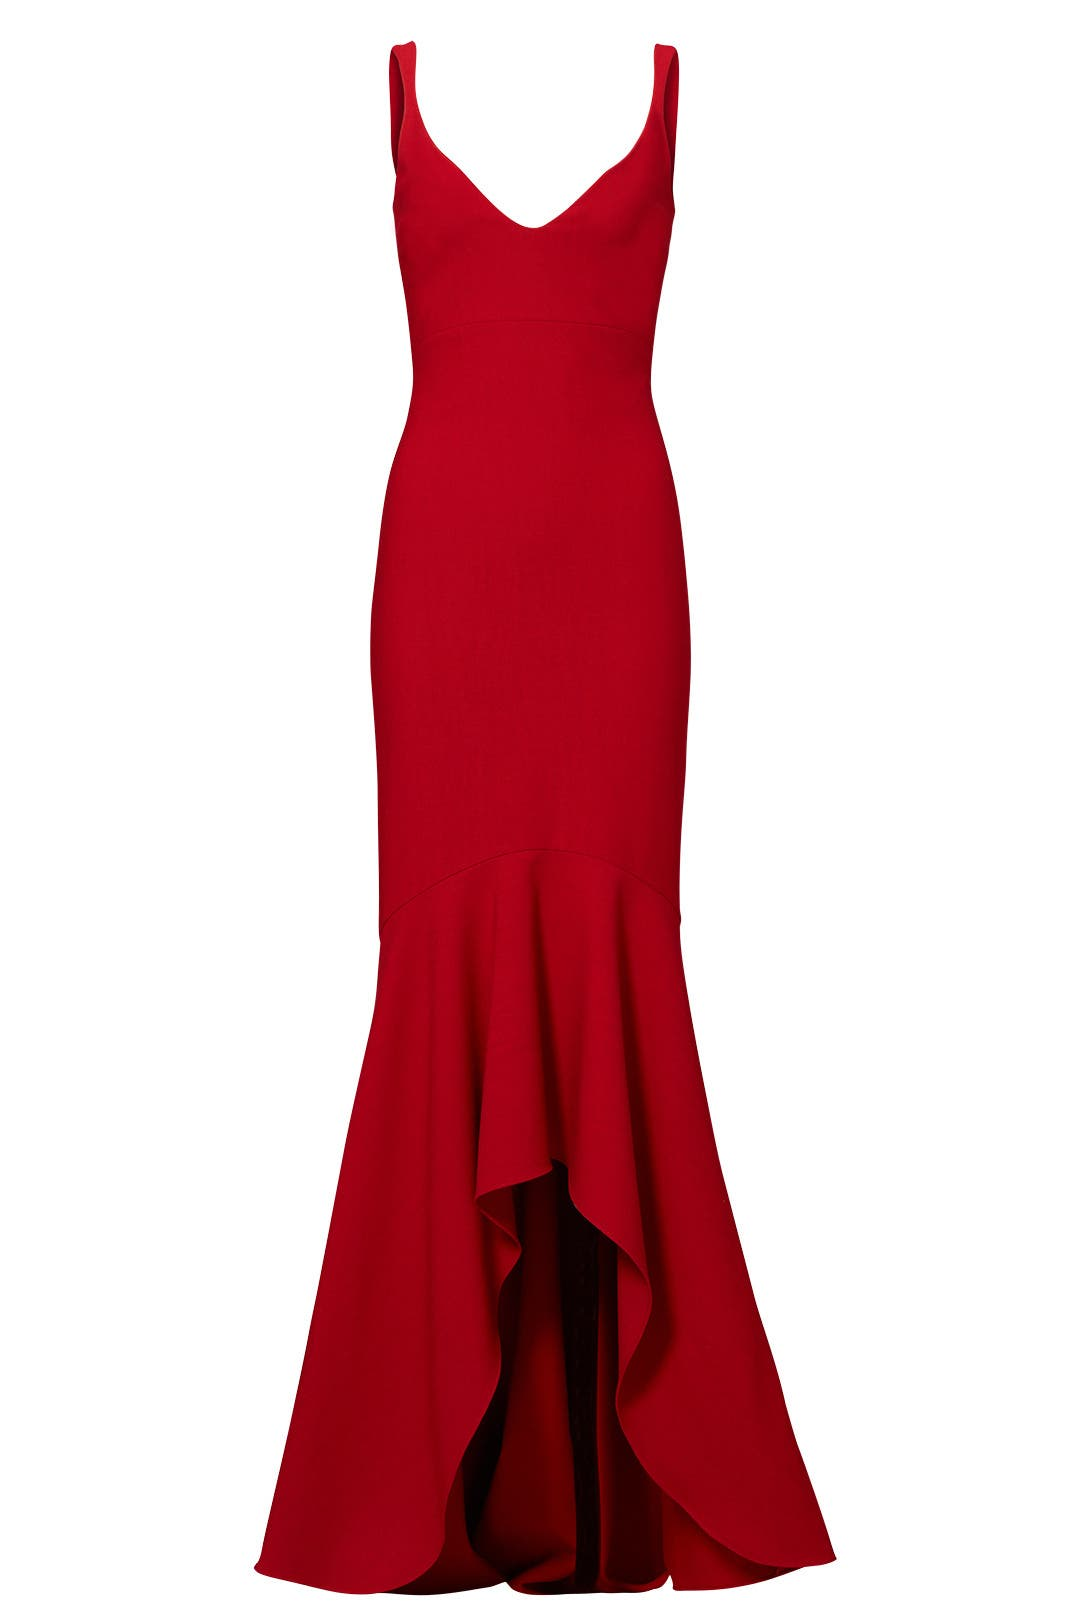 Red Sade Gown by Cinq à Sept for $110 - $120 | Rent the Runway